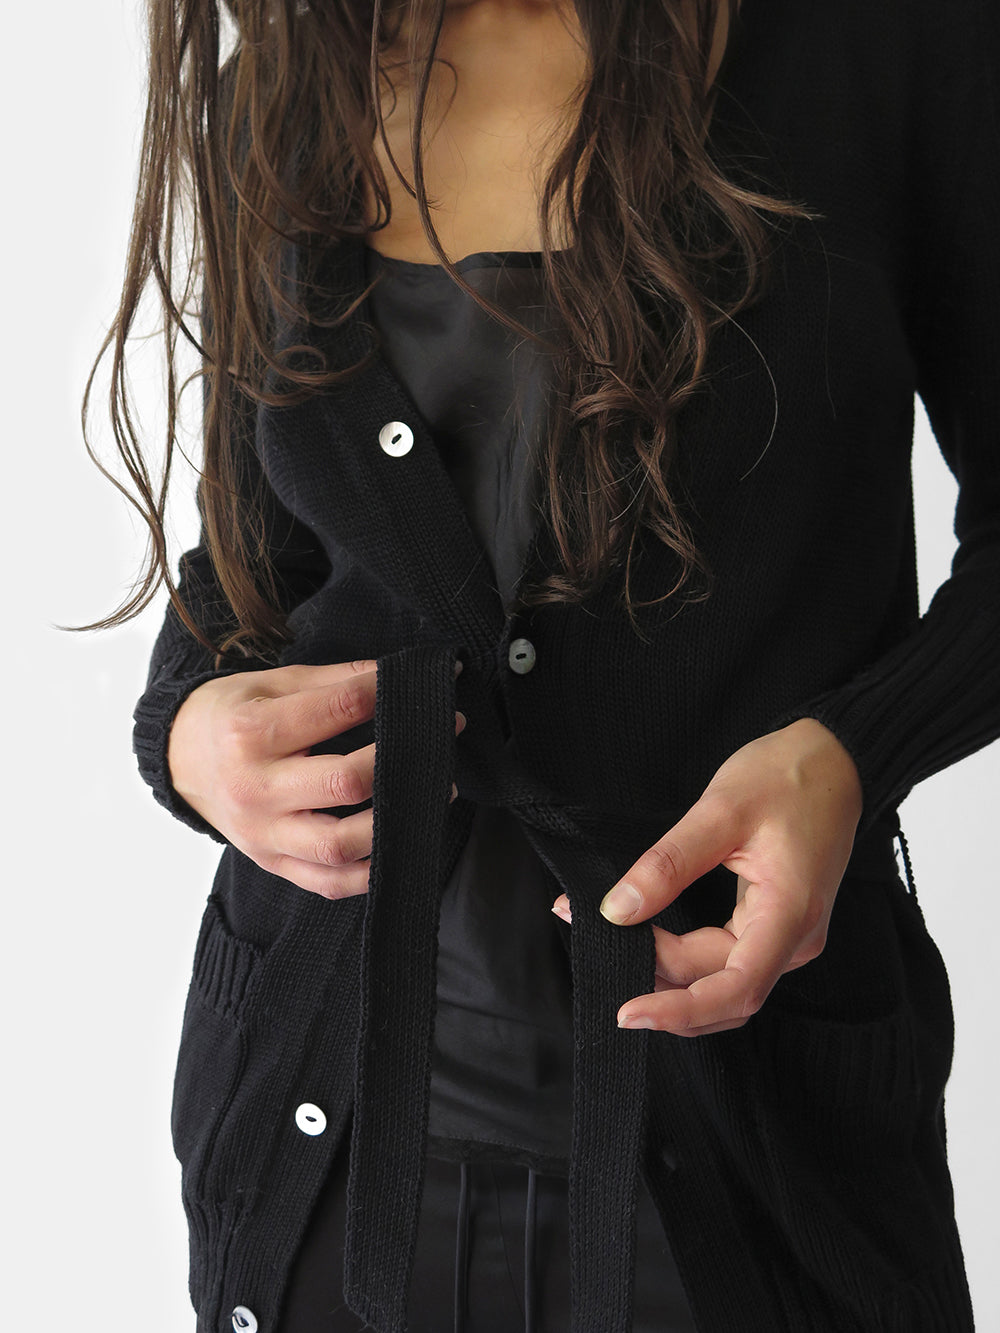 long slim-fitting belted cardigan in soft pima cotton with generous pockets & mother-of-pearl buttons. our essential & timeless layering piece is ideal for fall transition & part of the erica tanov signature collection. ethically-made in bolivia. available online, berkeley 4th street, marin country mart, & row dtla.